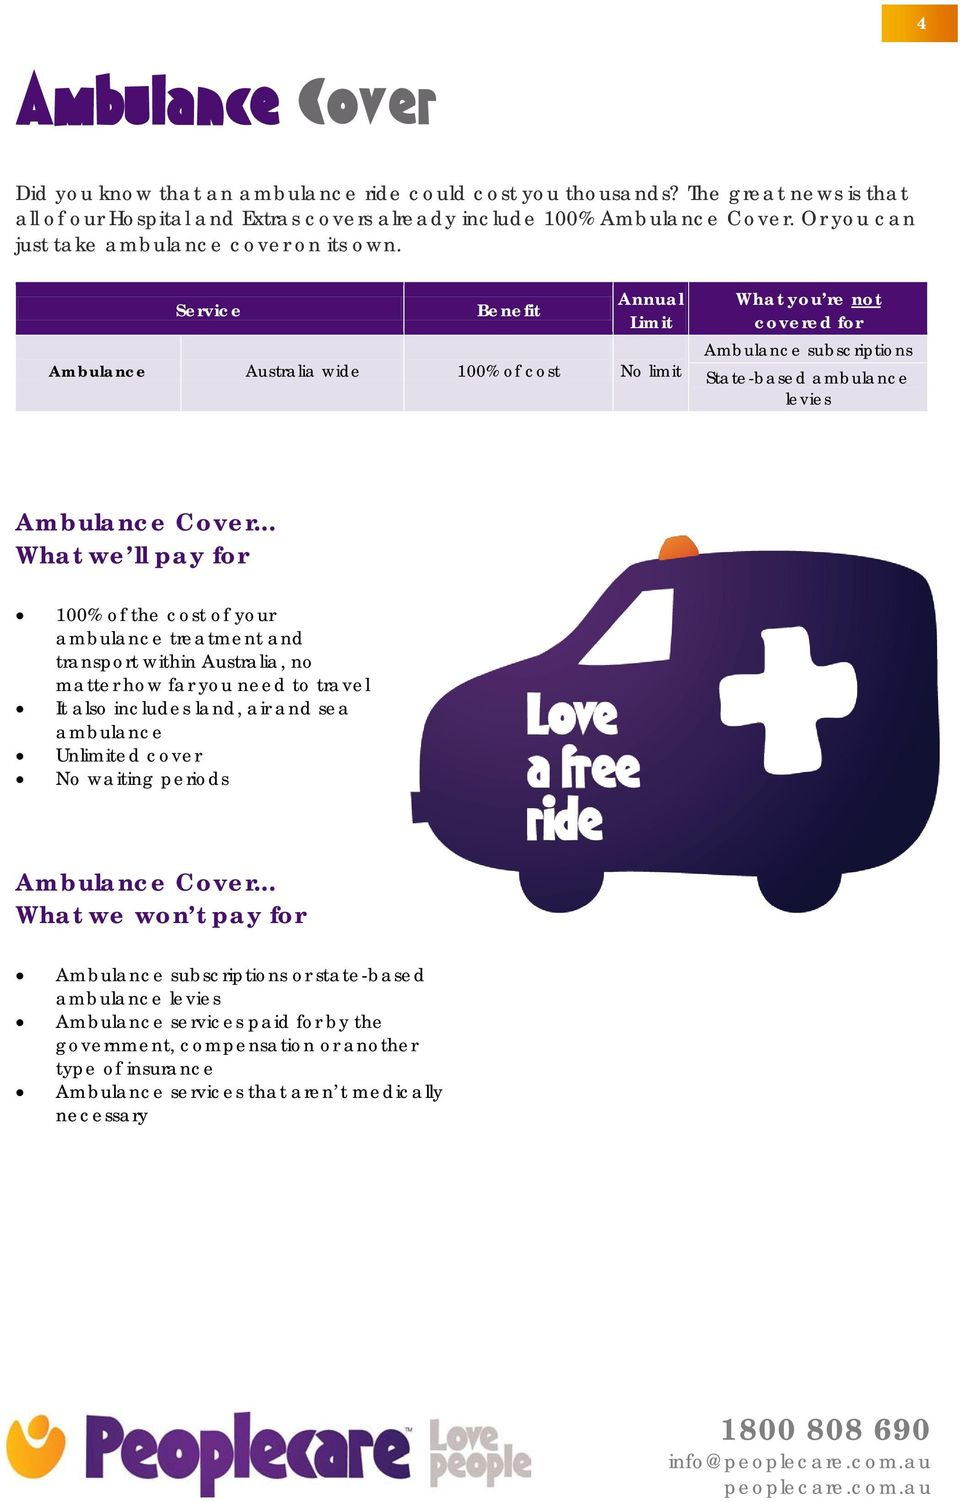 Service Benefit Annual Limit Ambulance Australia wide 100% of cost No limit What you re not covered for Ambulance subscriptions State-based ambulance levies Ambulance Cover.